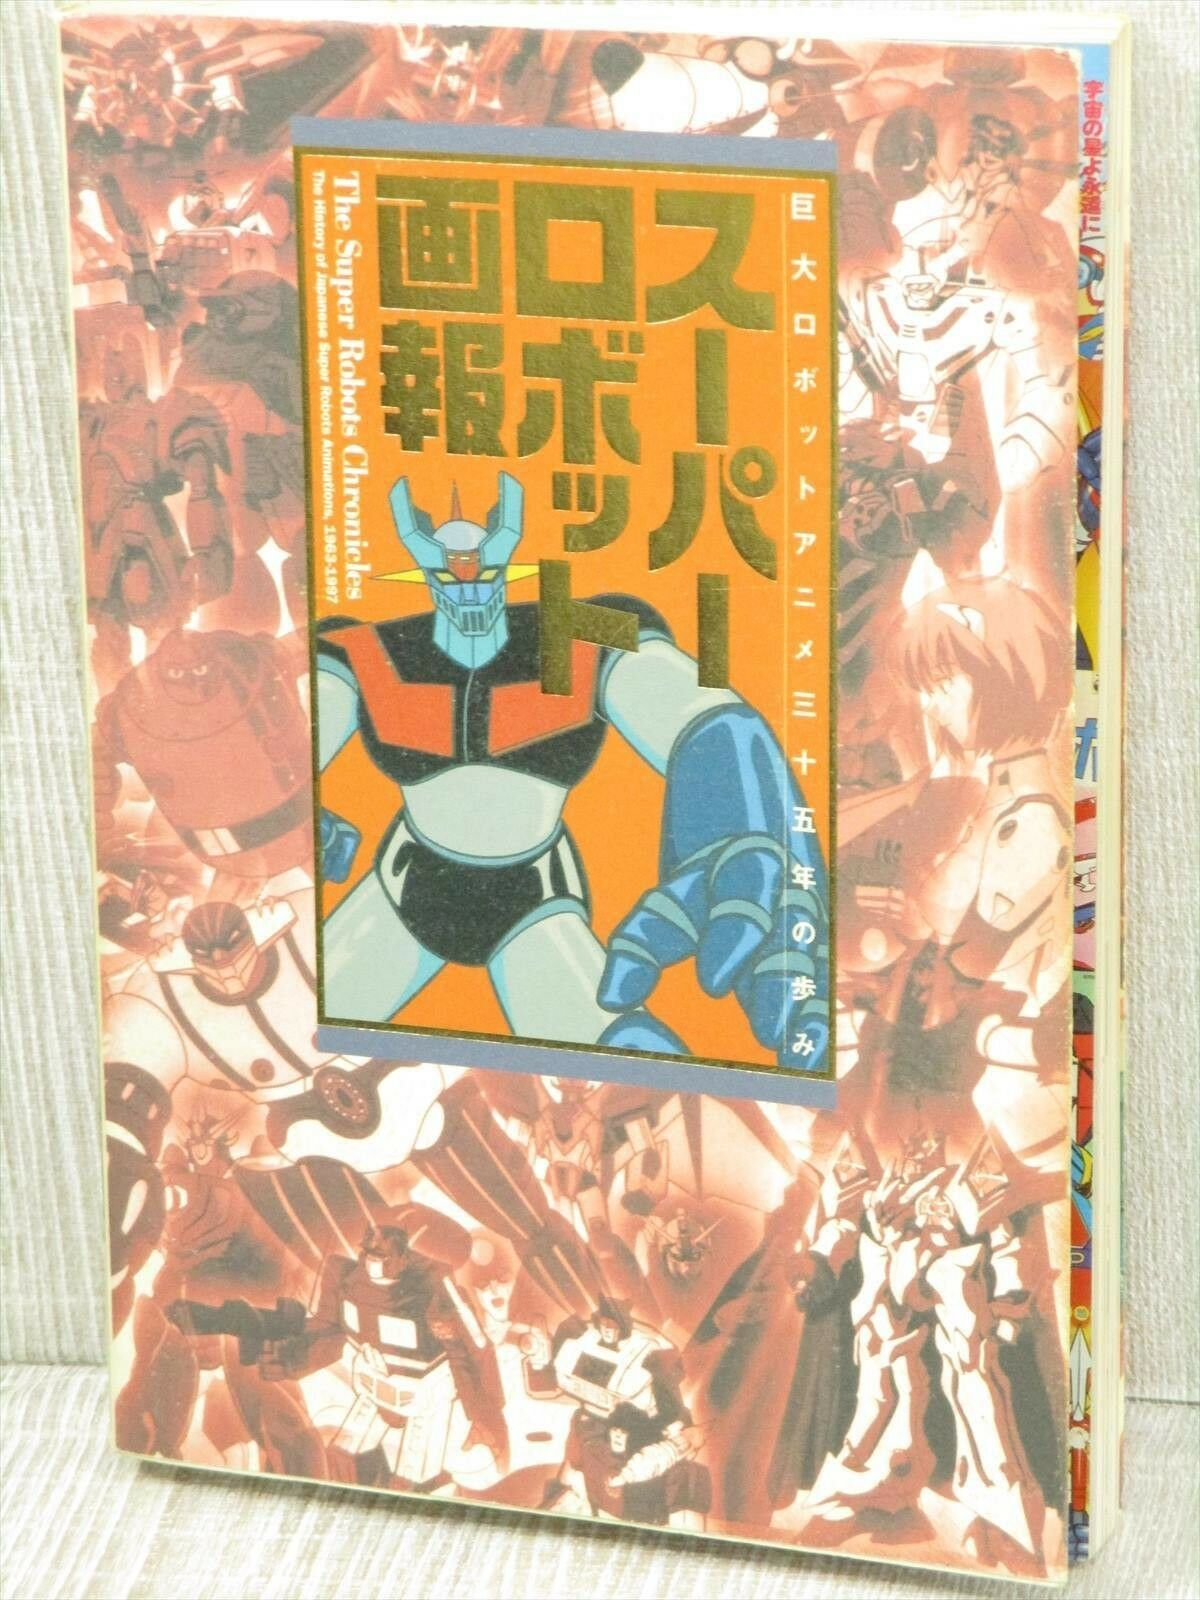 SUPER ROBOT GAHO History Book Japanese Anime Fanbook Fanbook Fanbook 1963-1997 Art Book TS3x a59e33